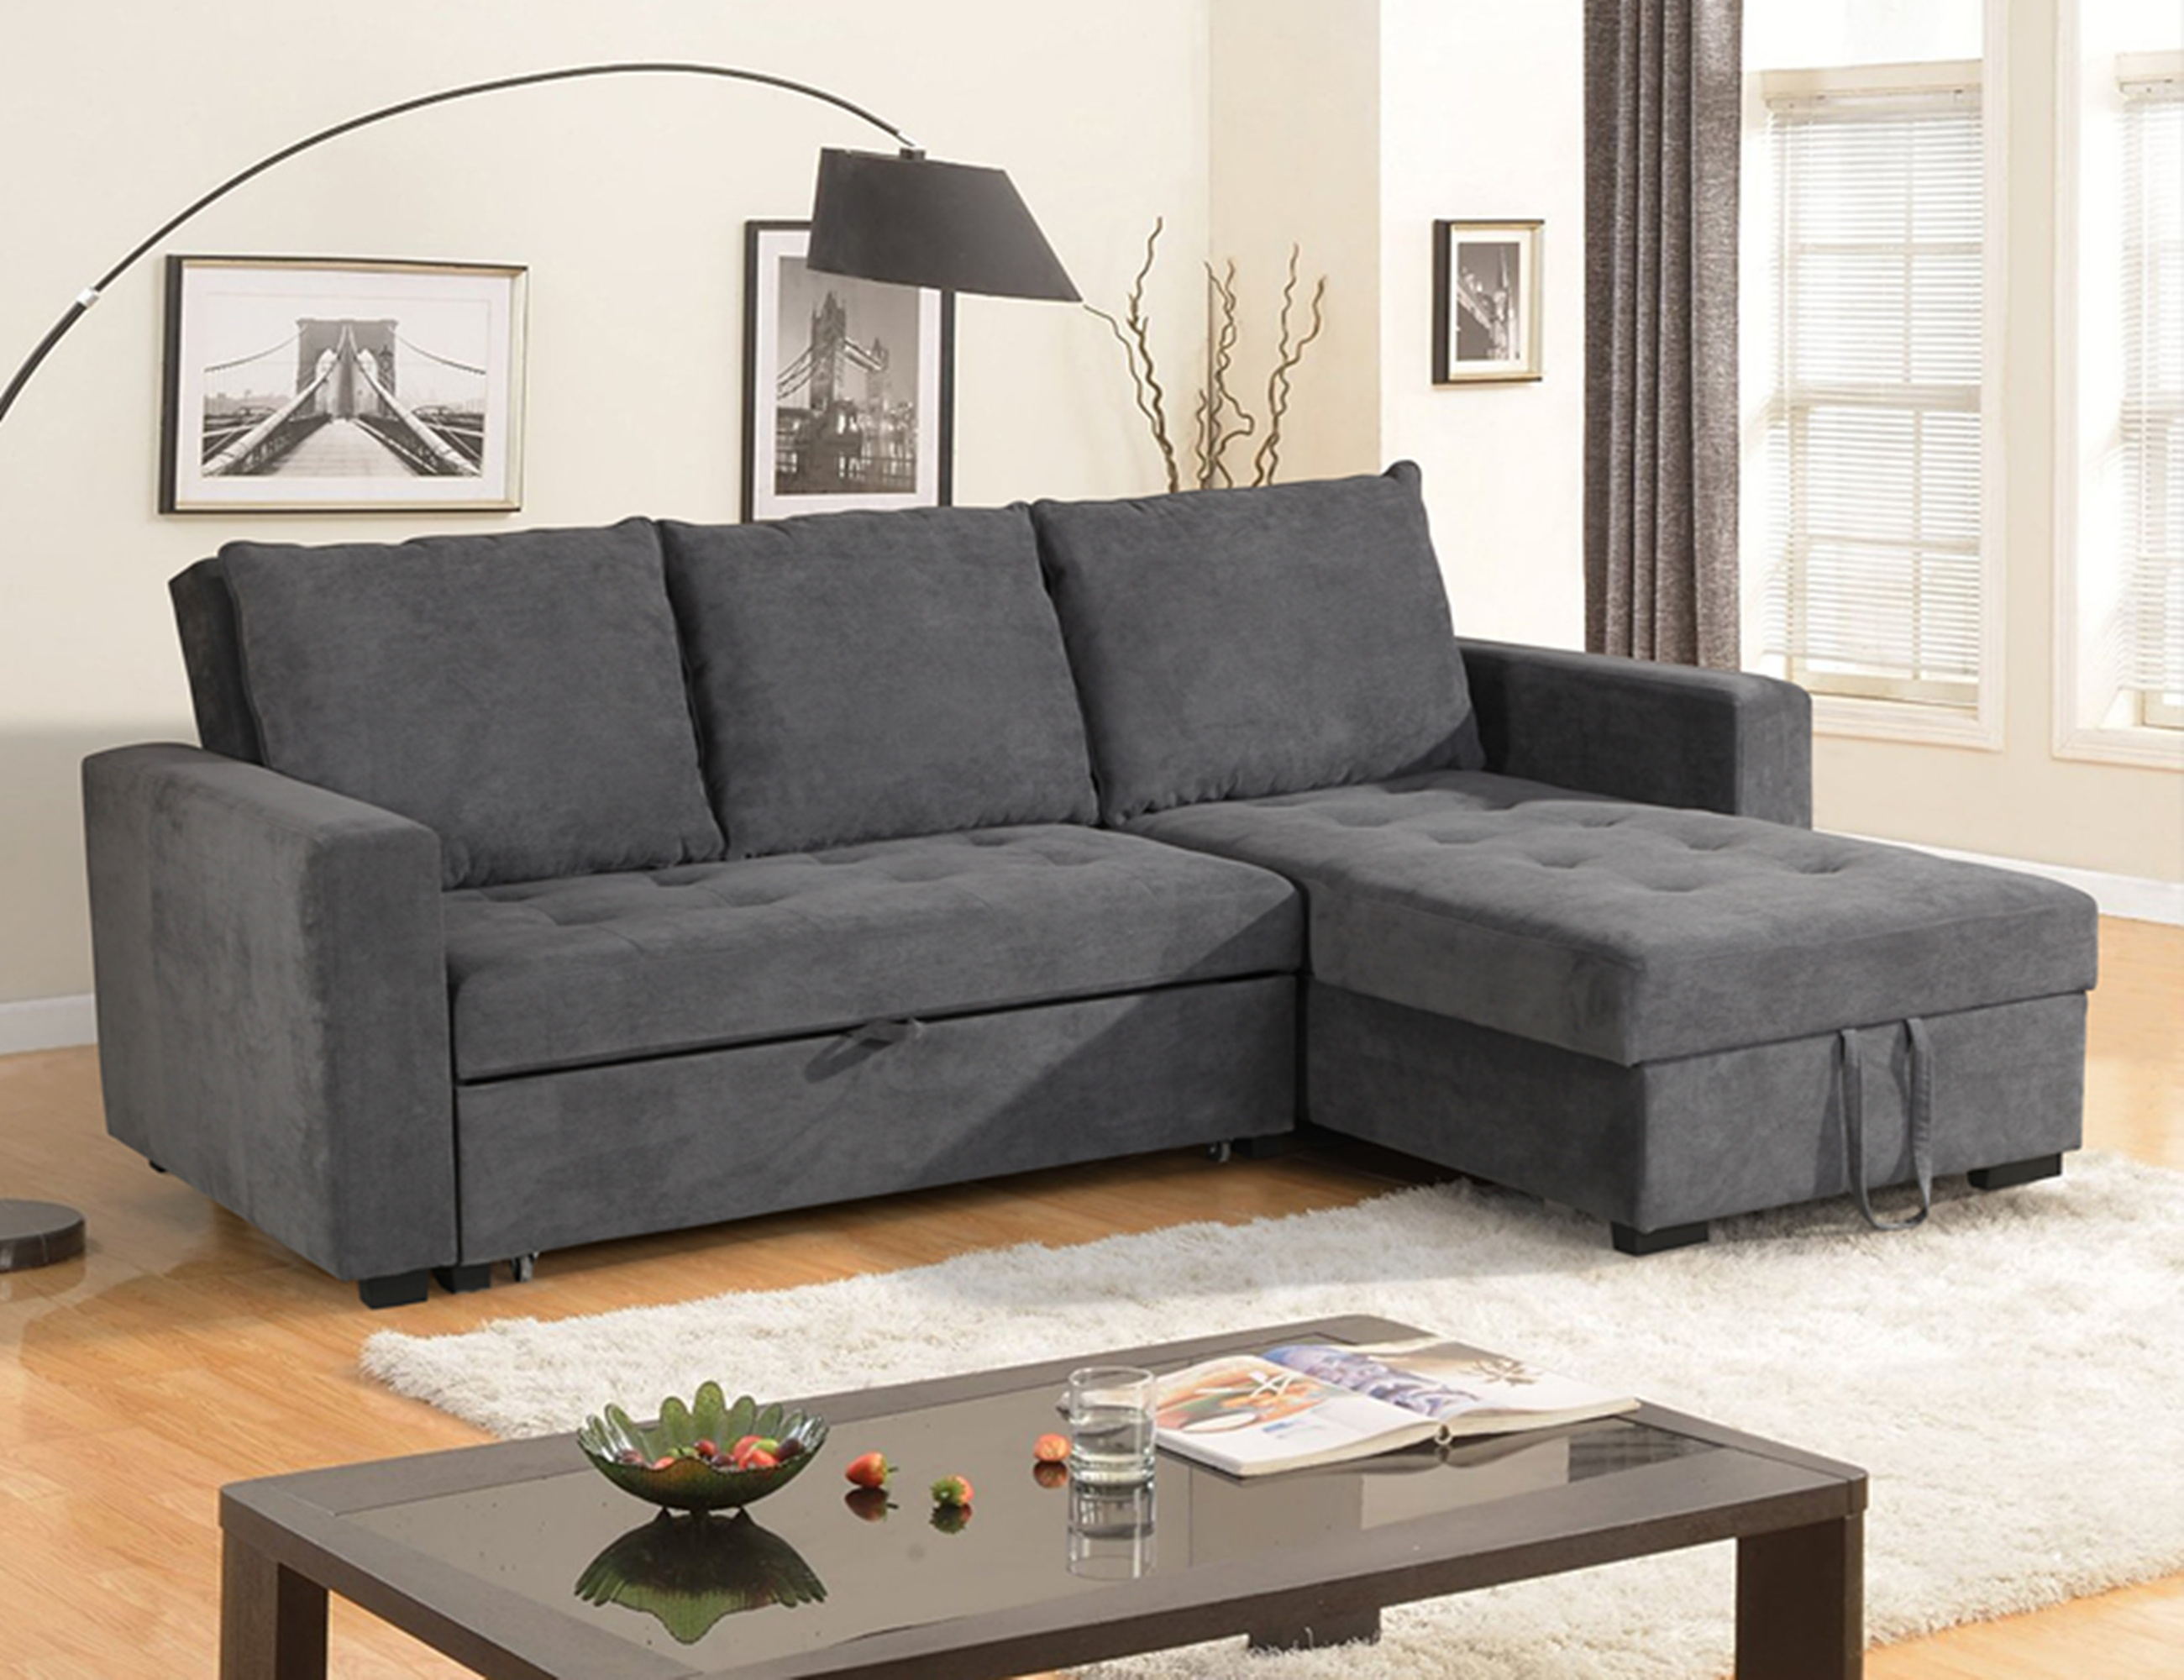 FRANK FURNITURE SOFA CUM FABRIC BED WHOLESALE LIVING ROOM SOFA BED